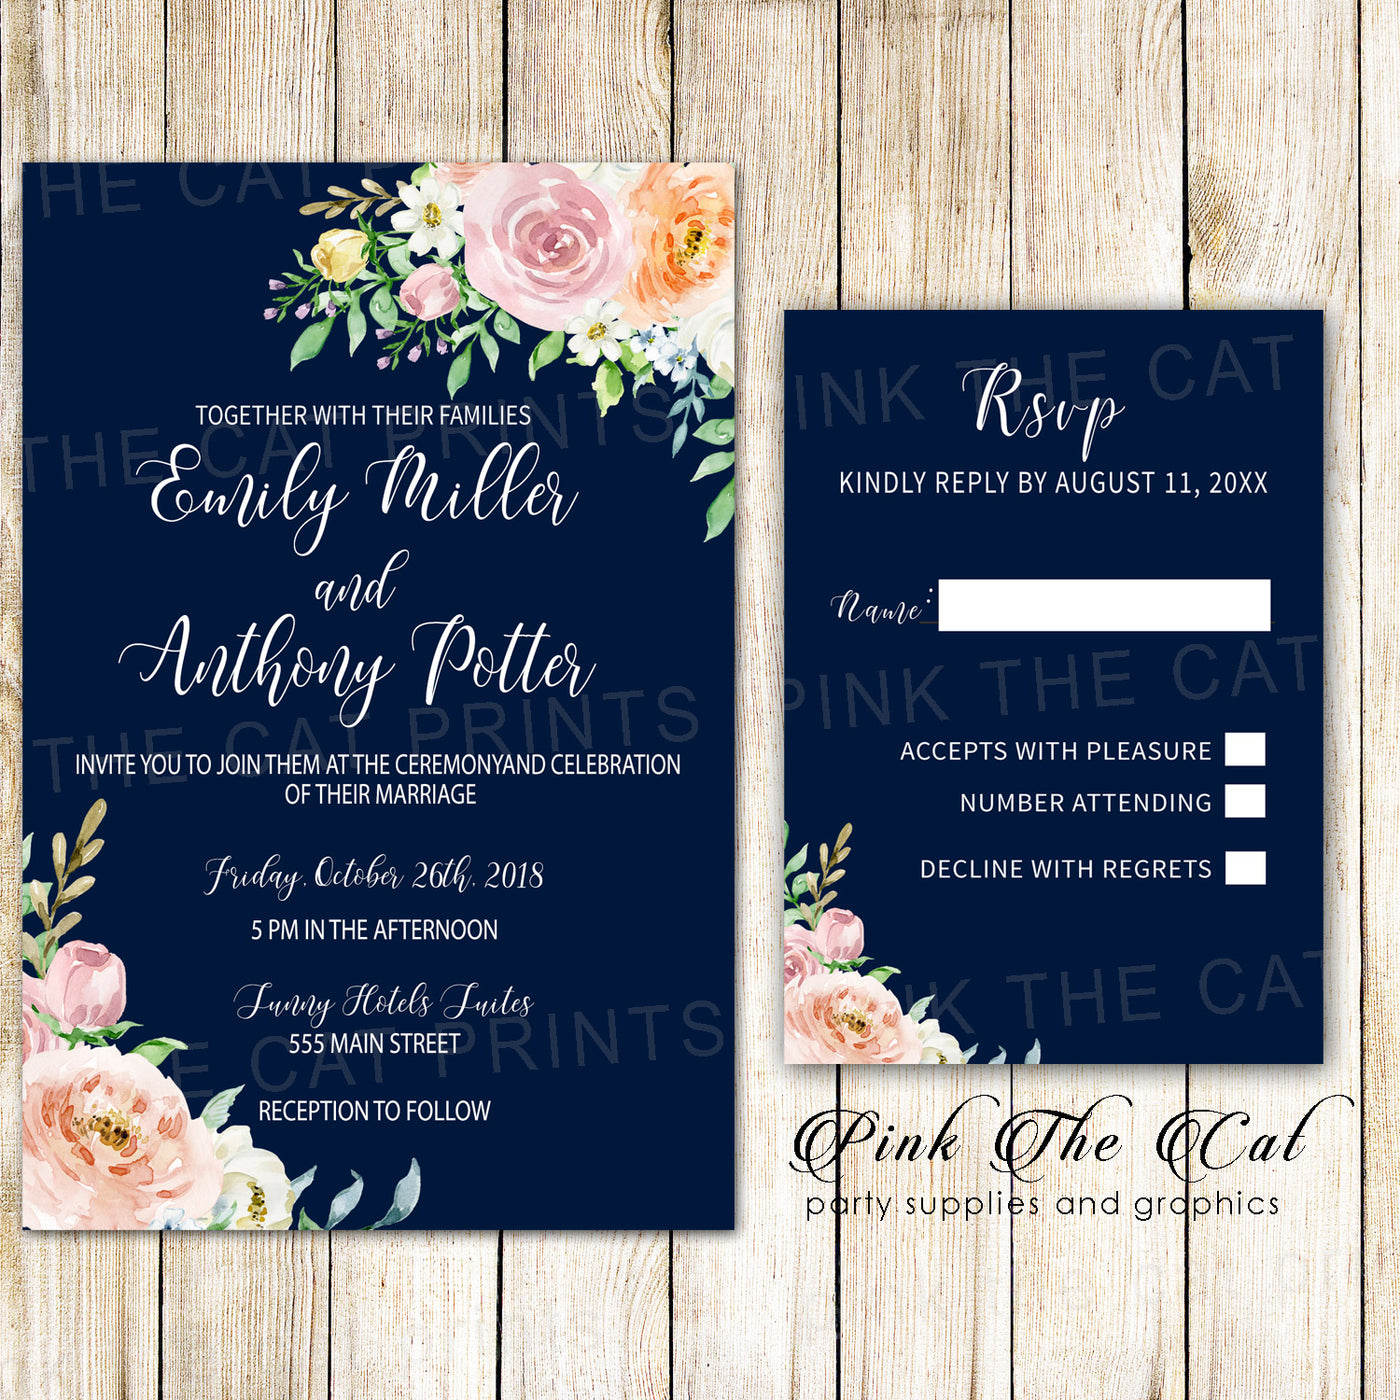 Wedding Invitations Navy Blue Blush Pink Floral & RSVP